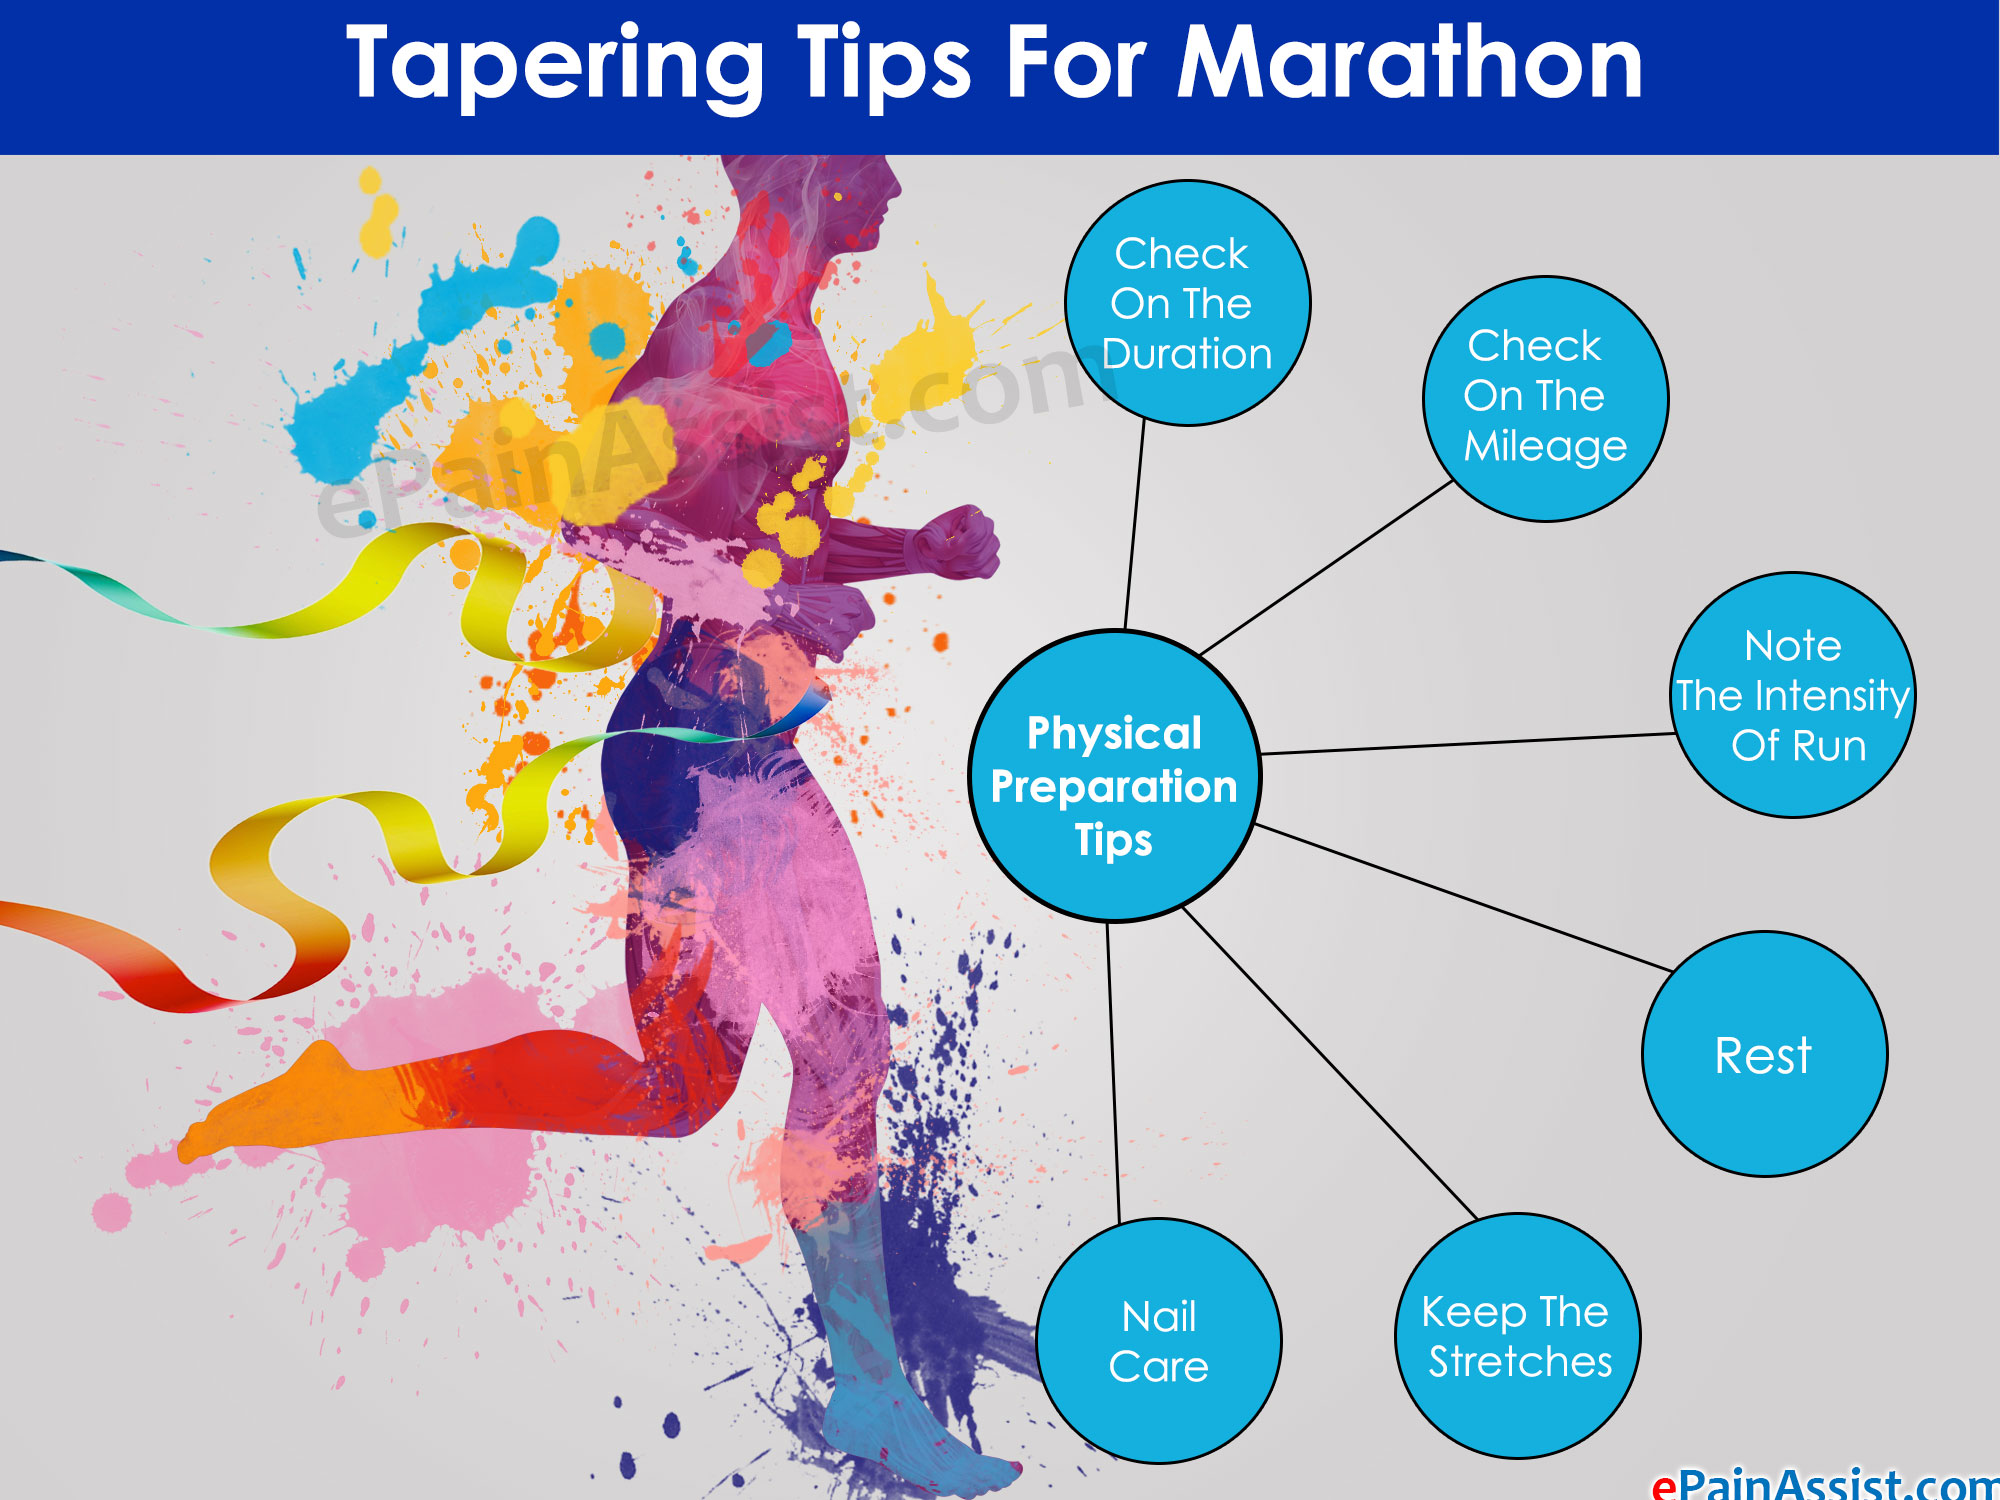 Tapering Tips For Marathon